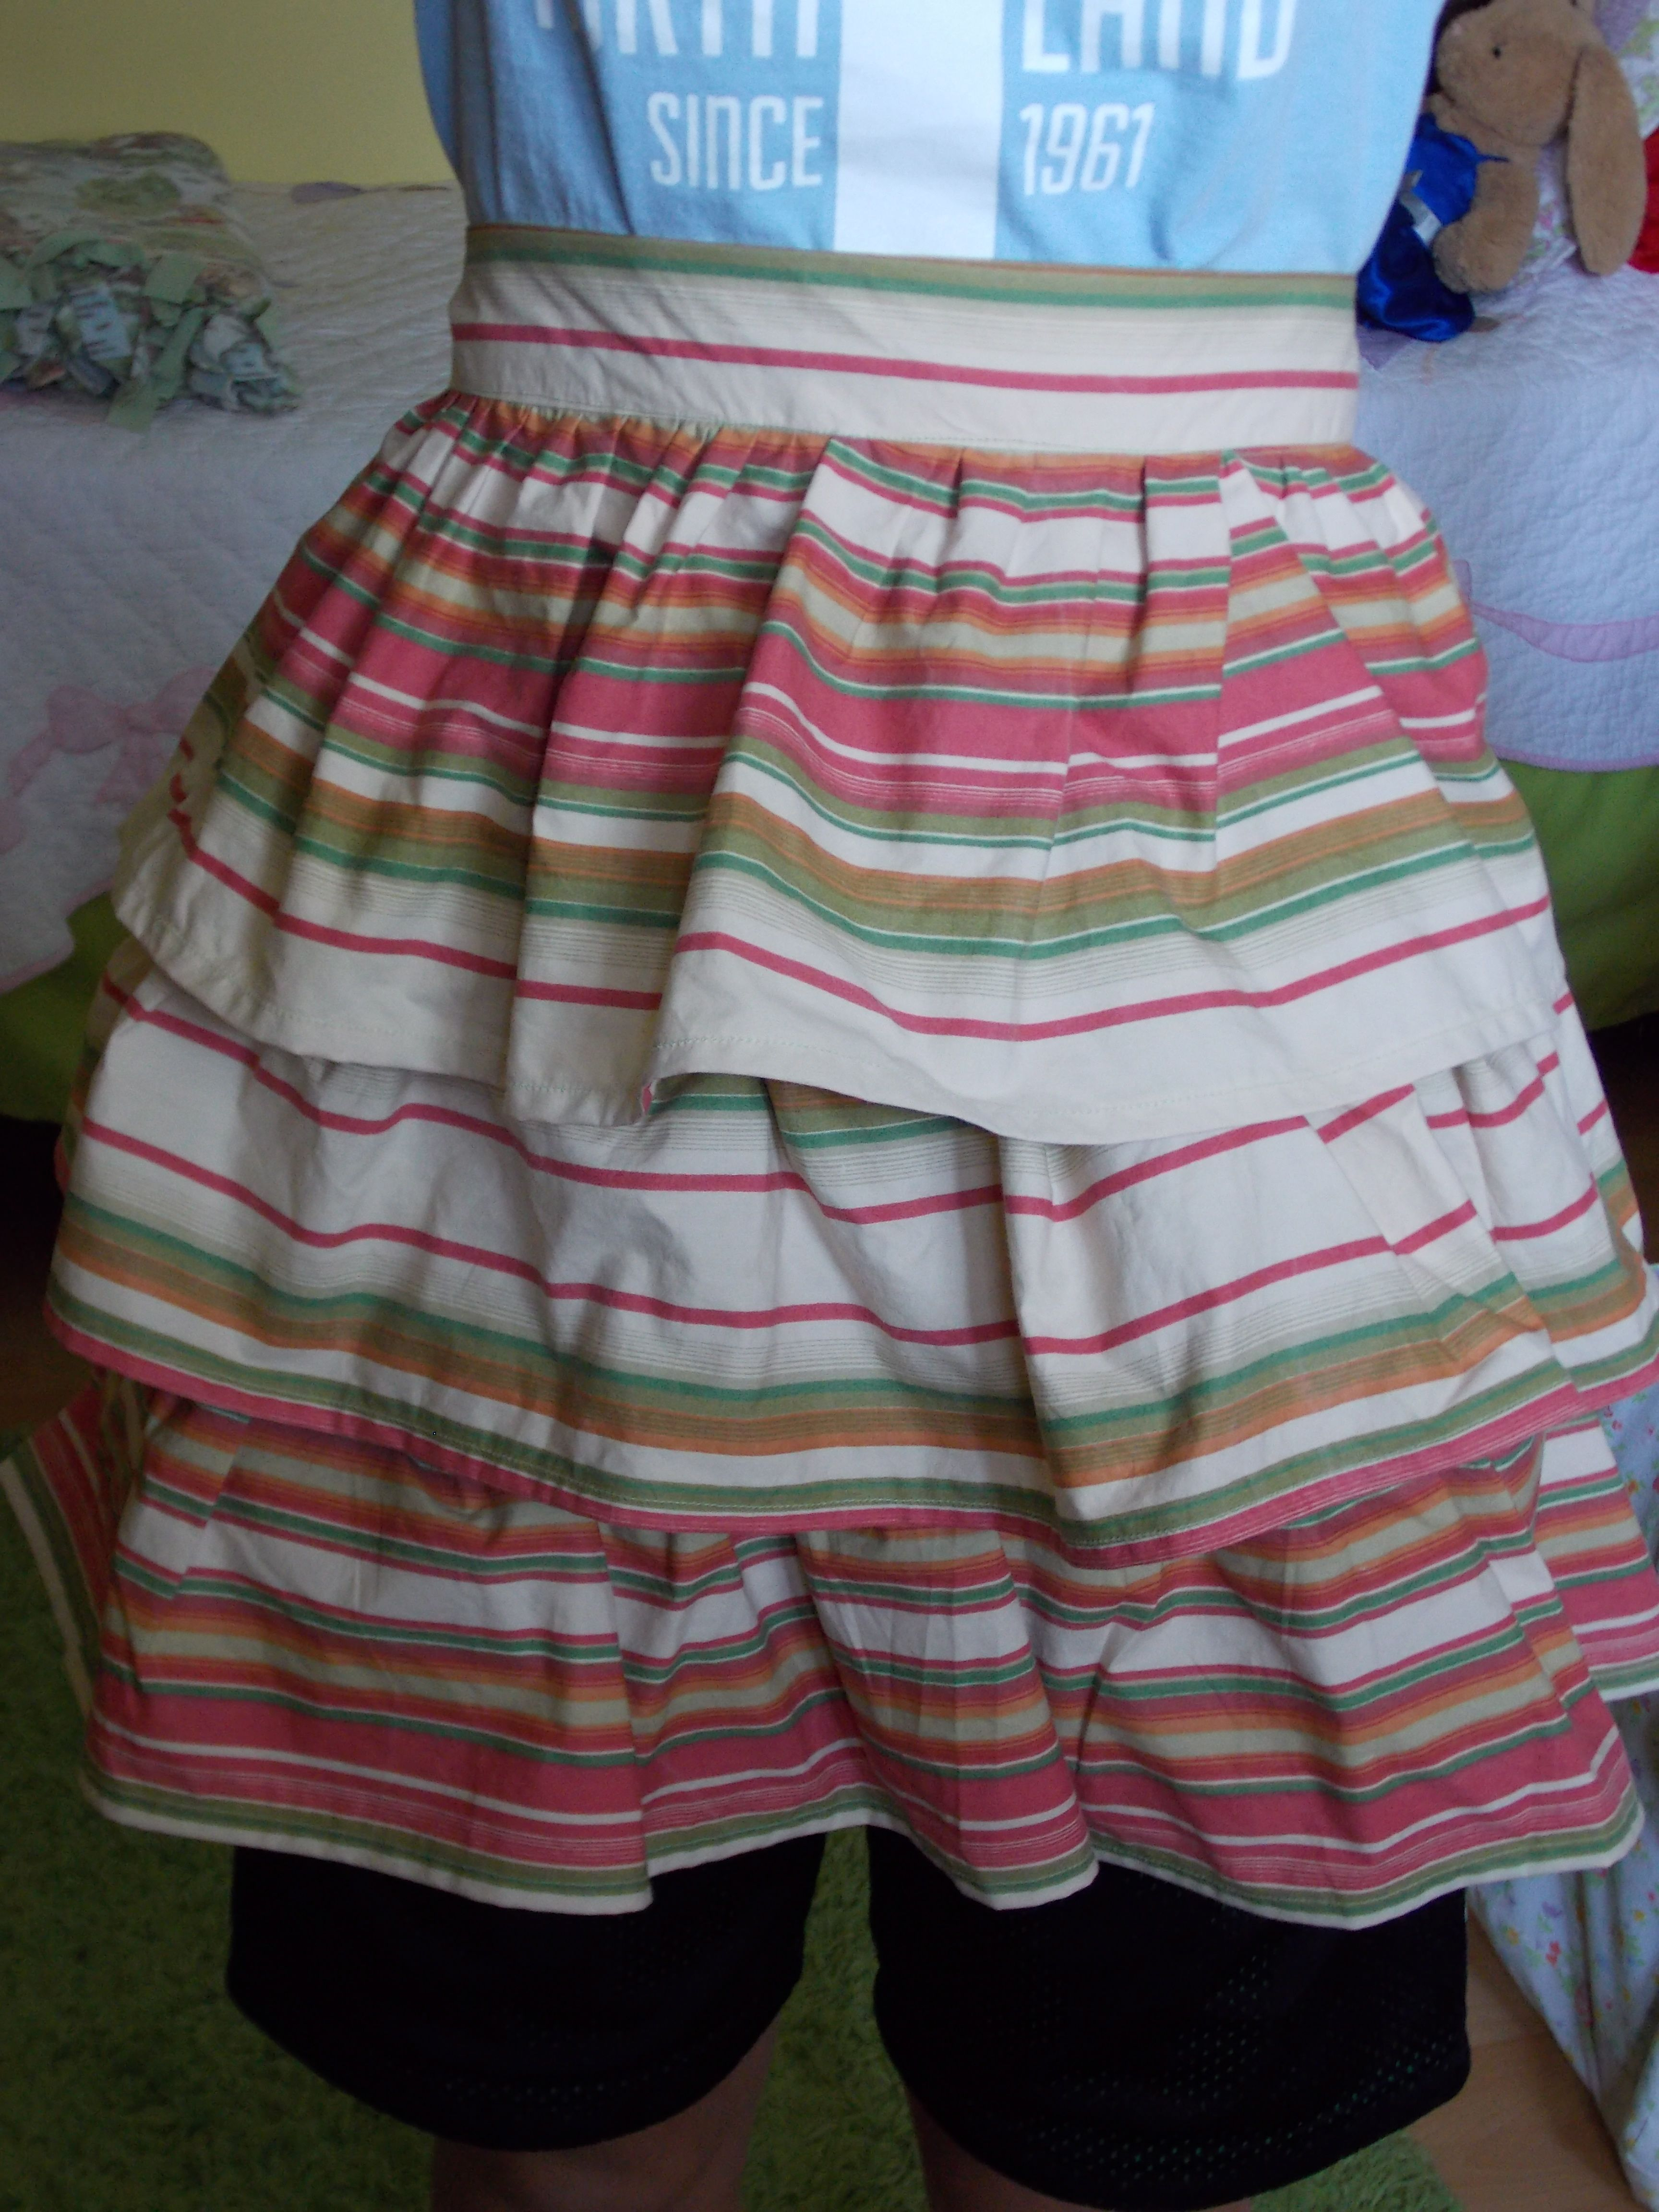 Hand sewn triple tiered apron made from vintage cotton sheet by content 2B sew.